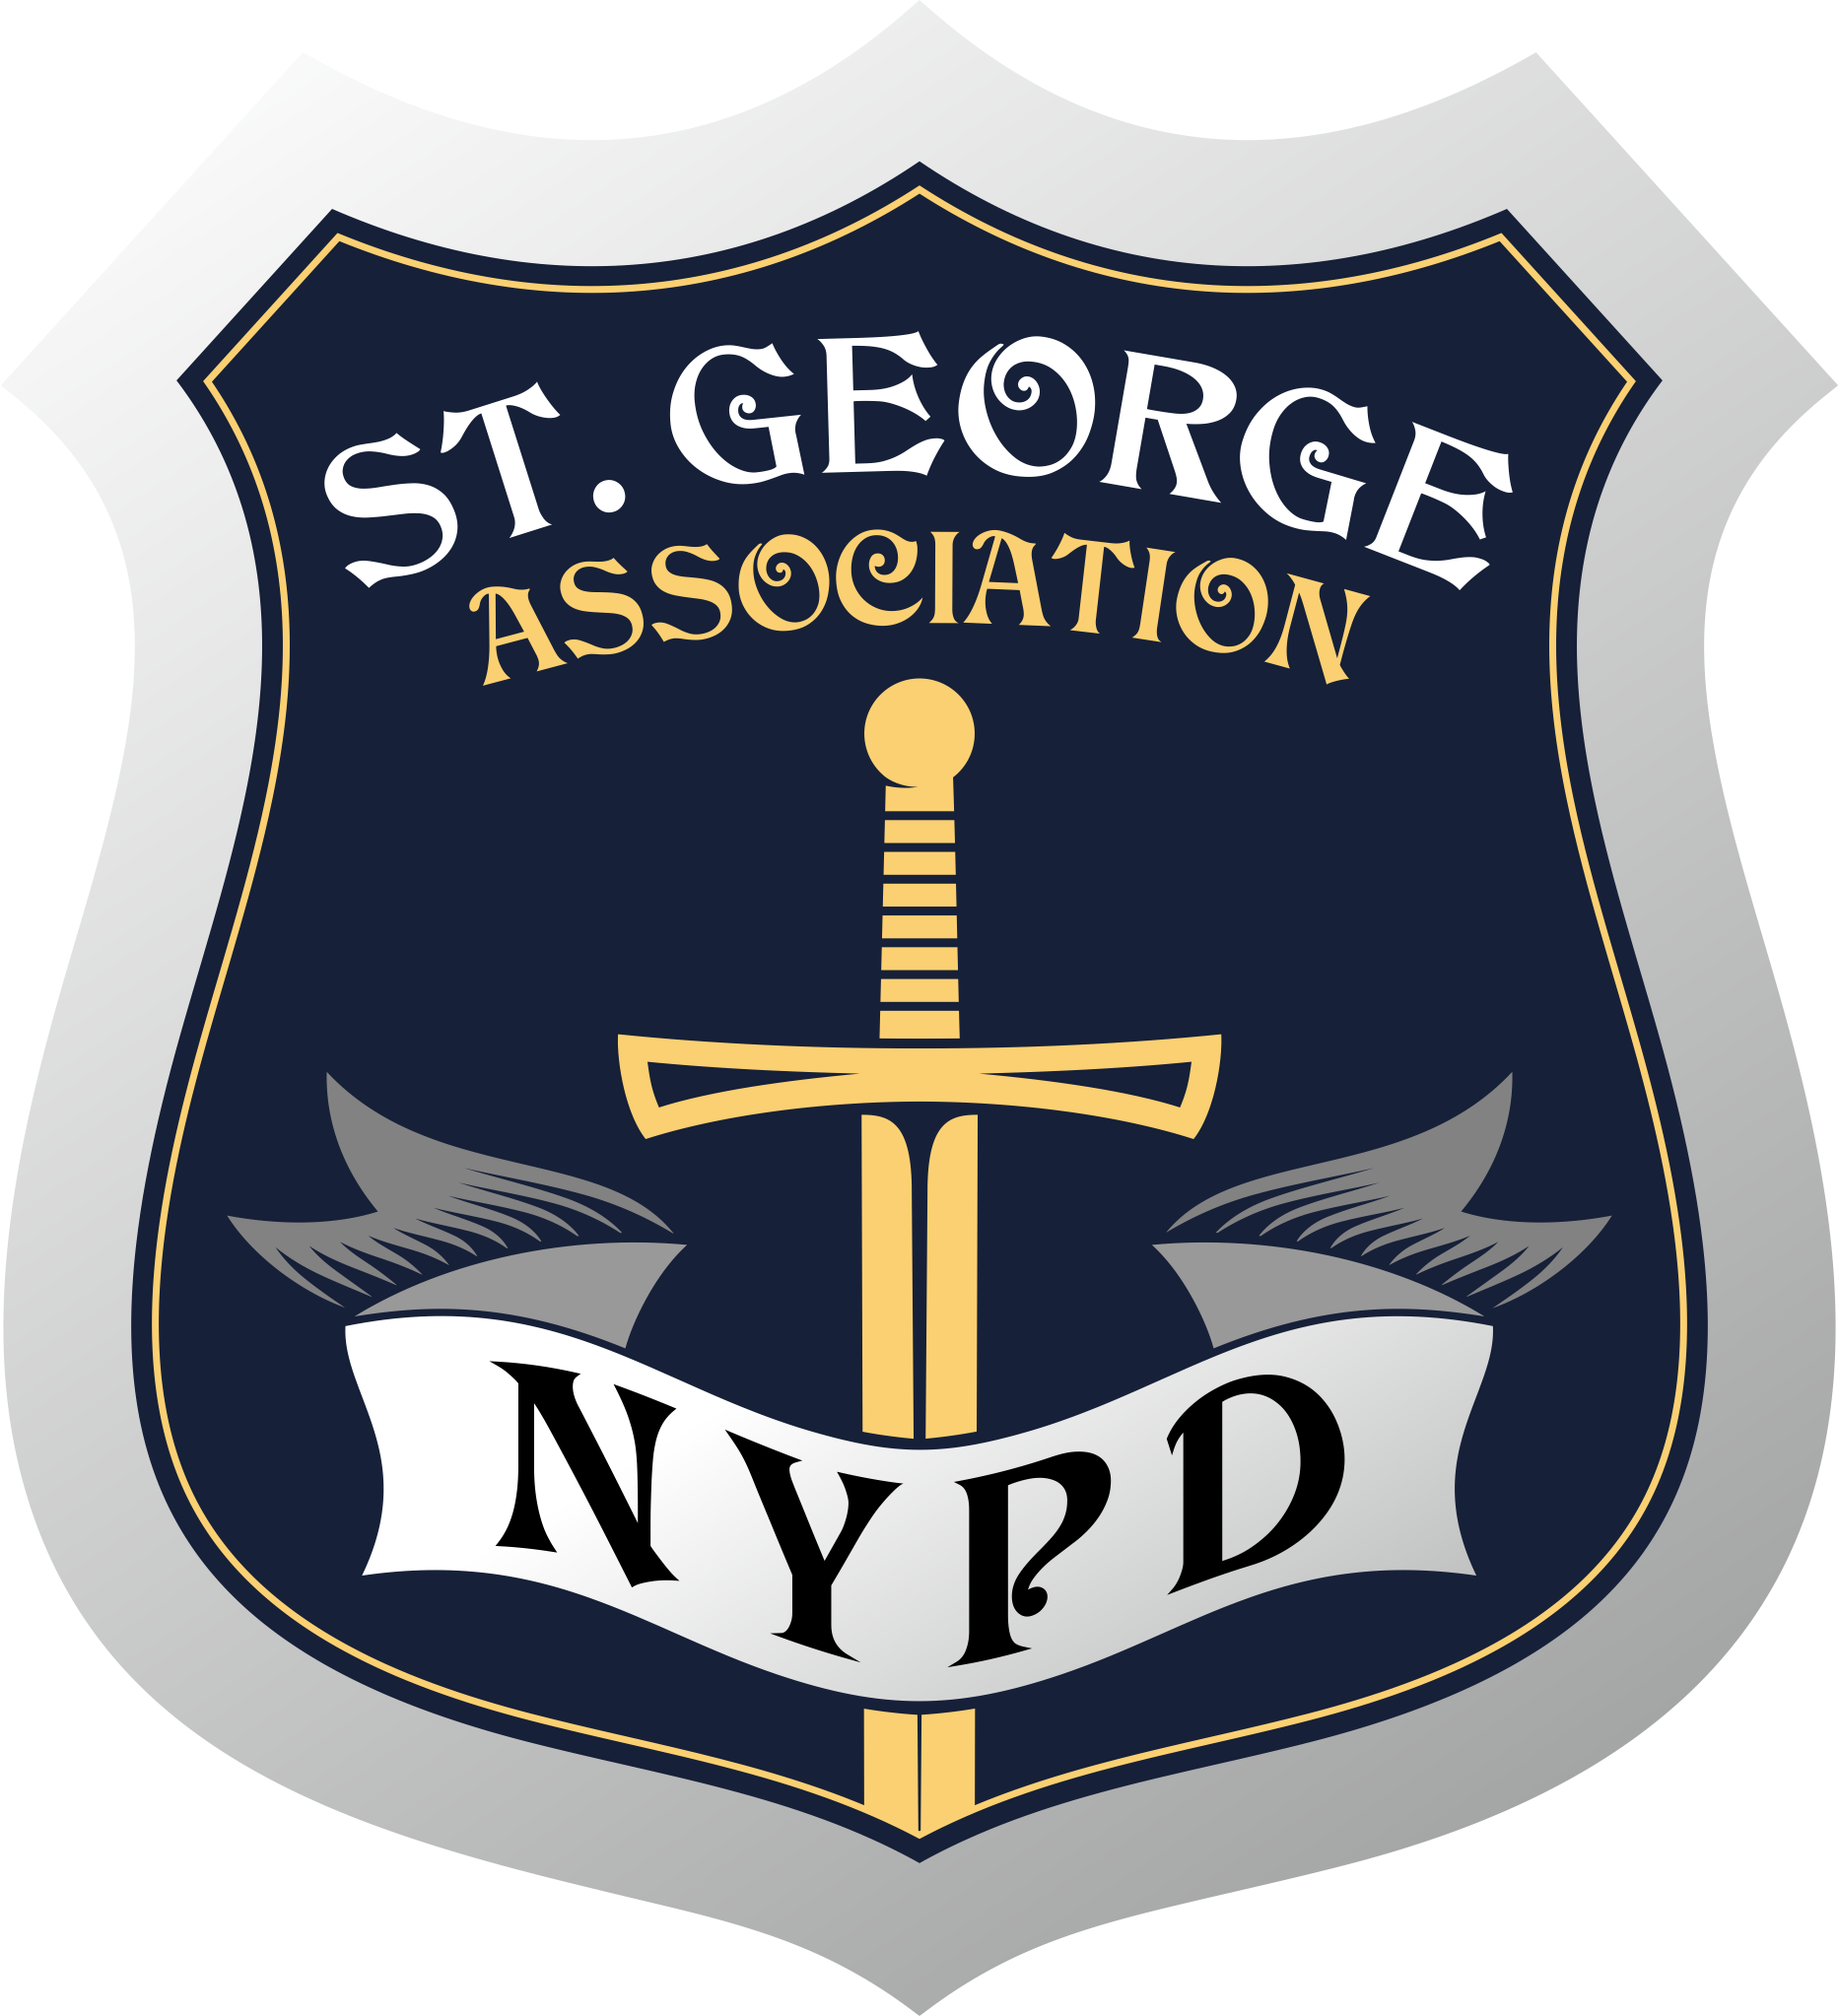 Christian Group for Police needs a logo